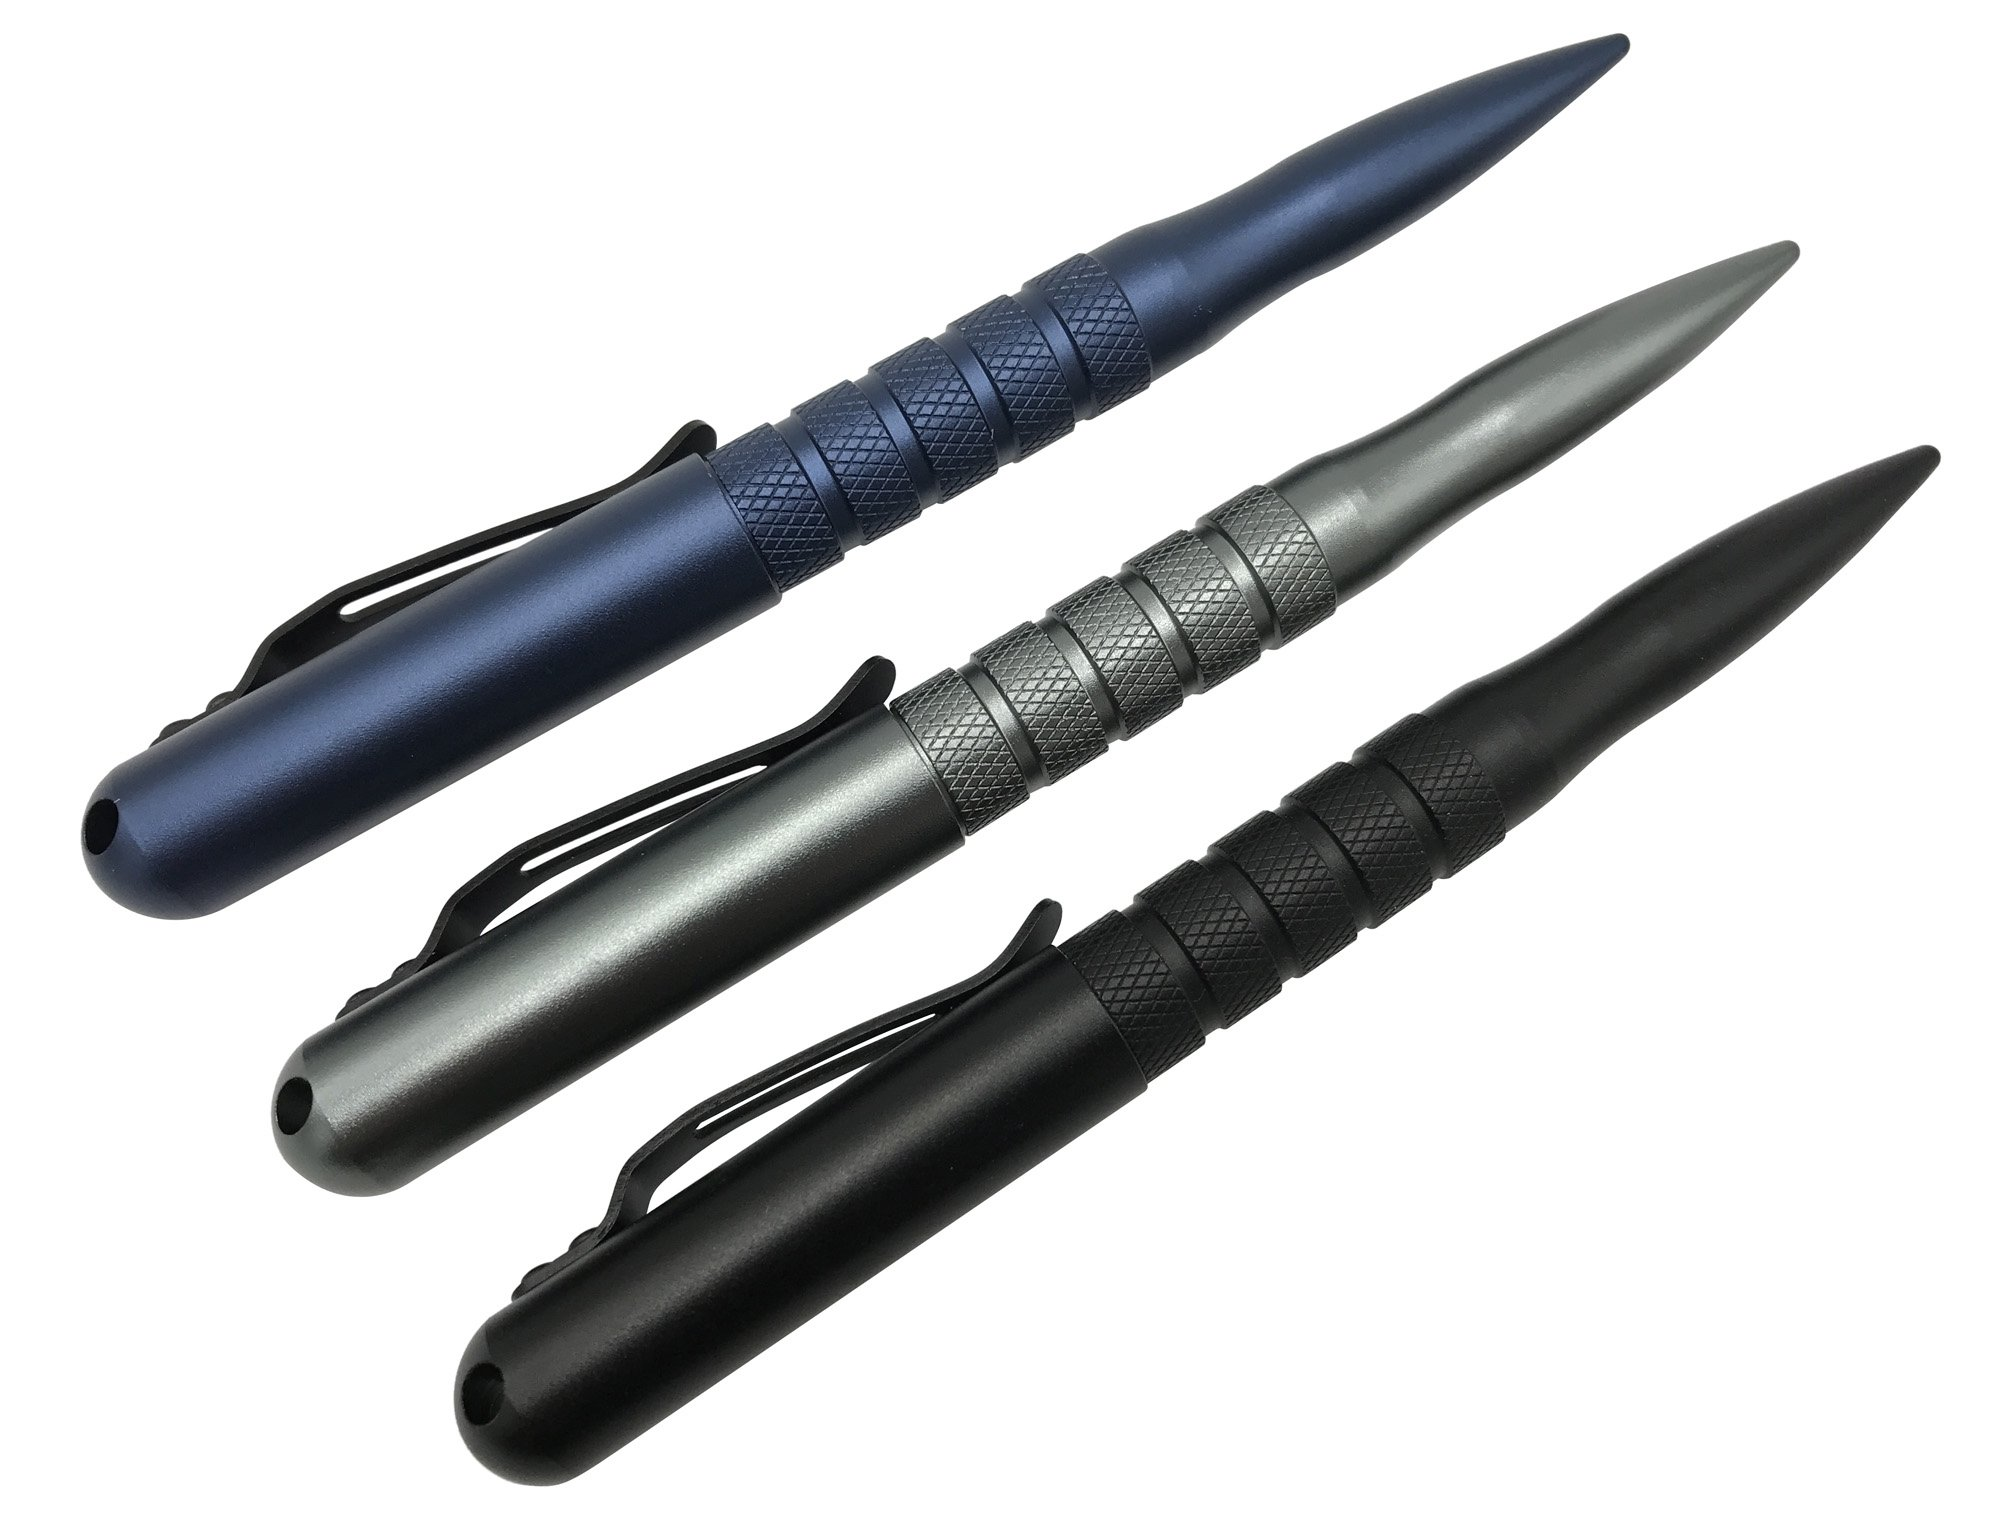 Practical Tactical Pen - The Premium Discreet High-Strength EDC Survival Tool, Glass Breaker and Pen, Best Design for Quick Effective Self Defense for Men and Women - 3 Colors, 2 Ink Cartridges